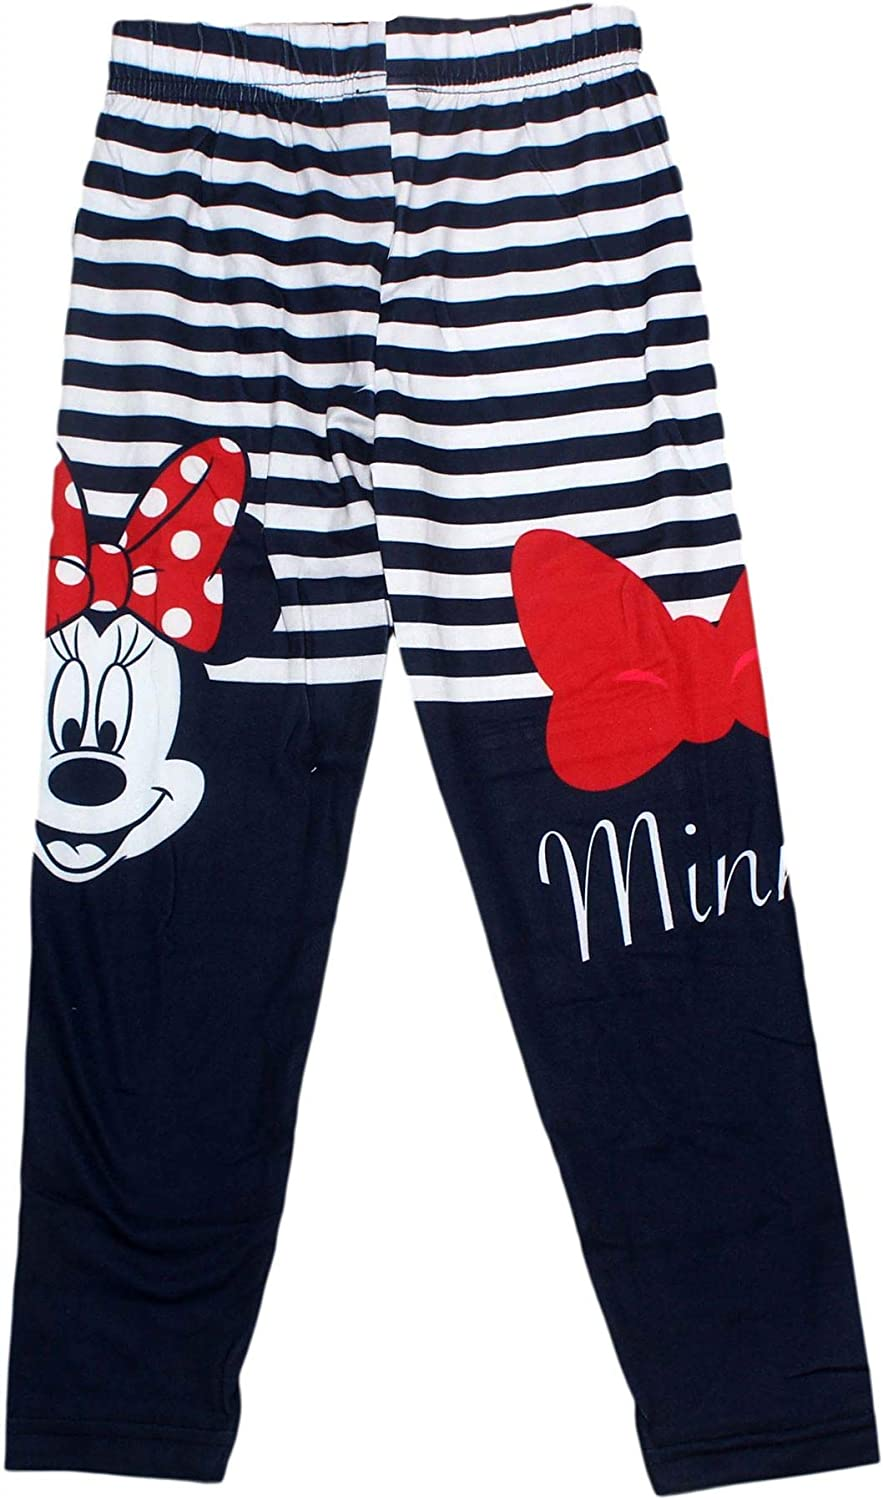 Stripes Pattern New 2018//19 Disney Minnie Mouse Character Girls Leggings Tights Full Length 3-8 Years Polka Dots